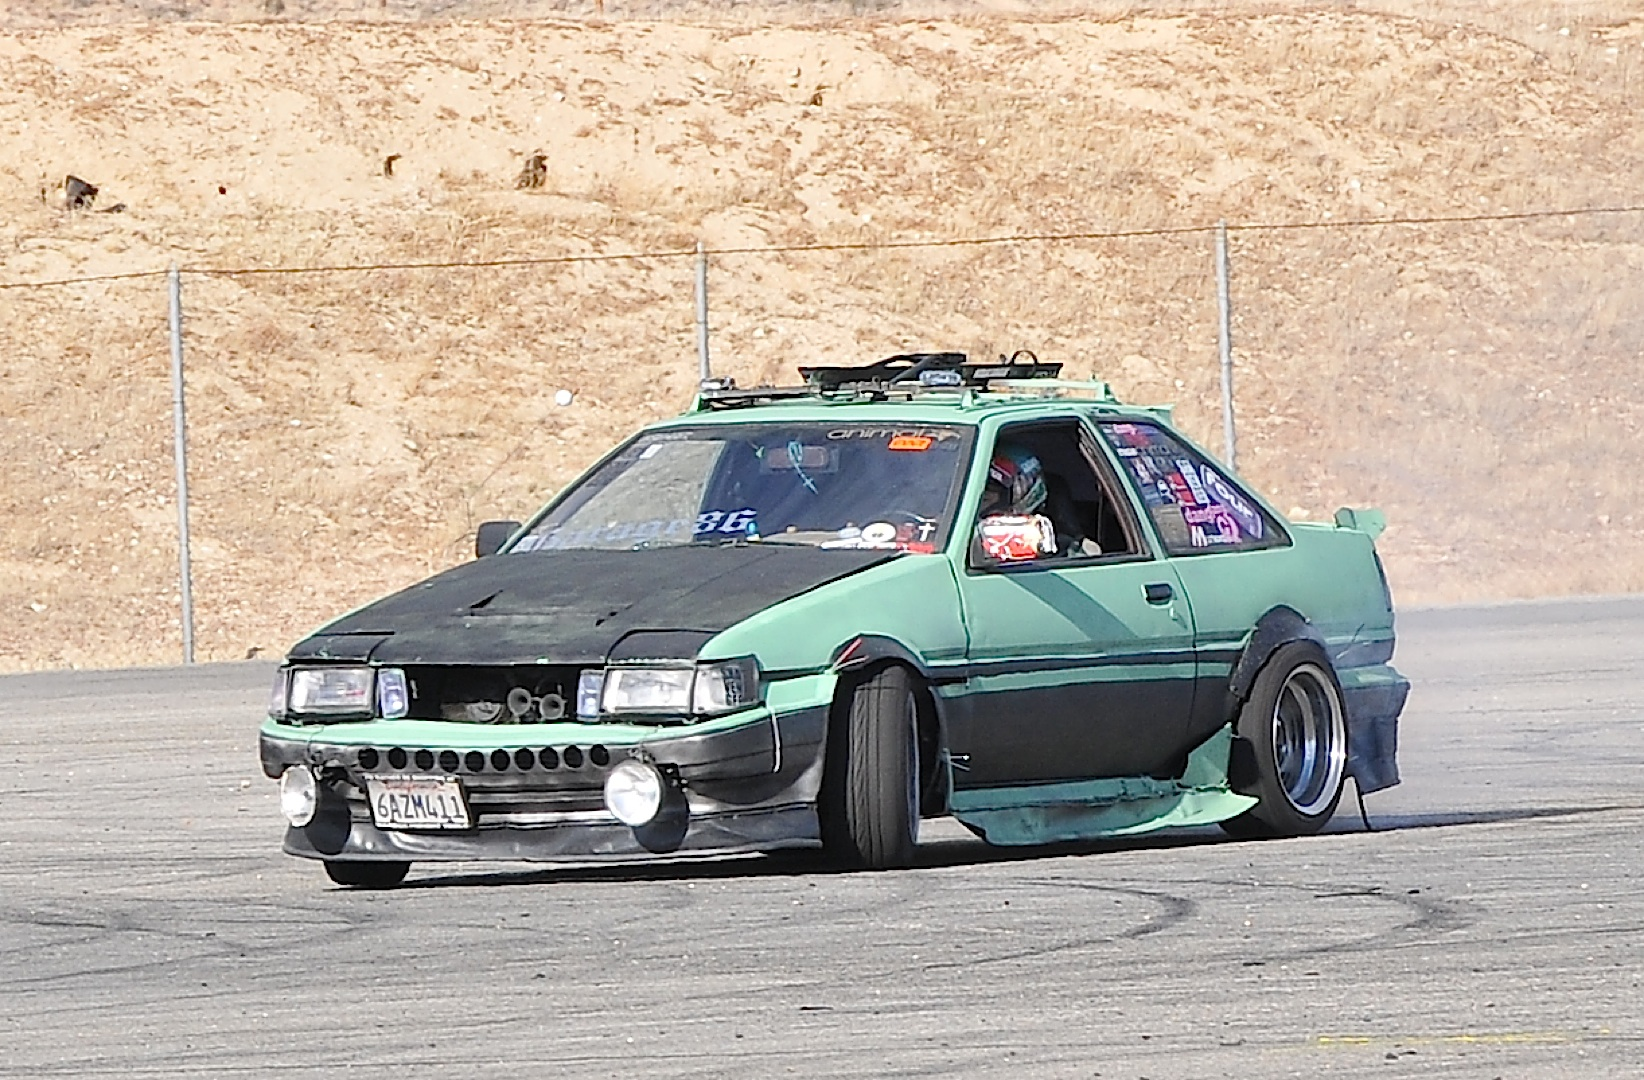 AE86, green, drift, boro,track day, grip day, roof rack